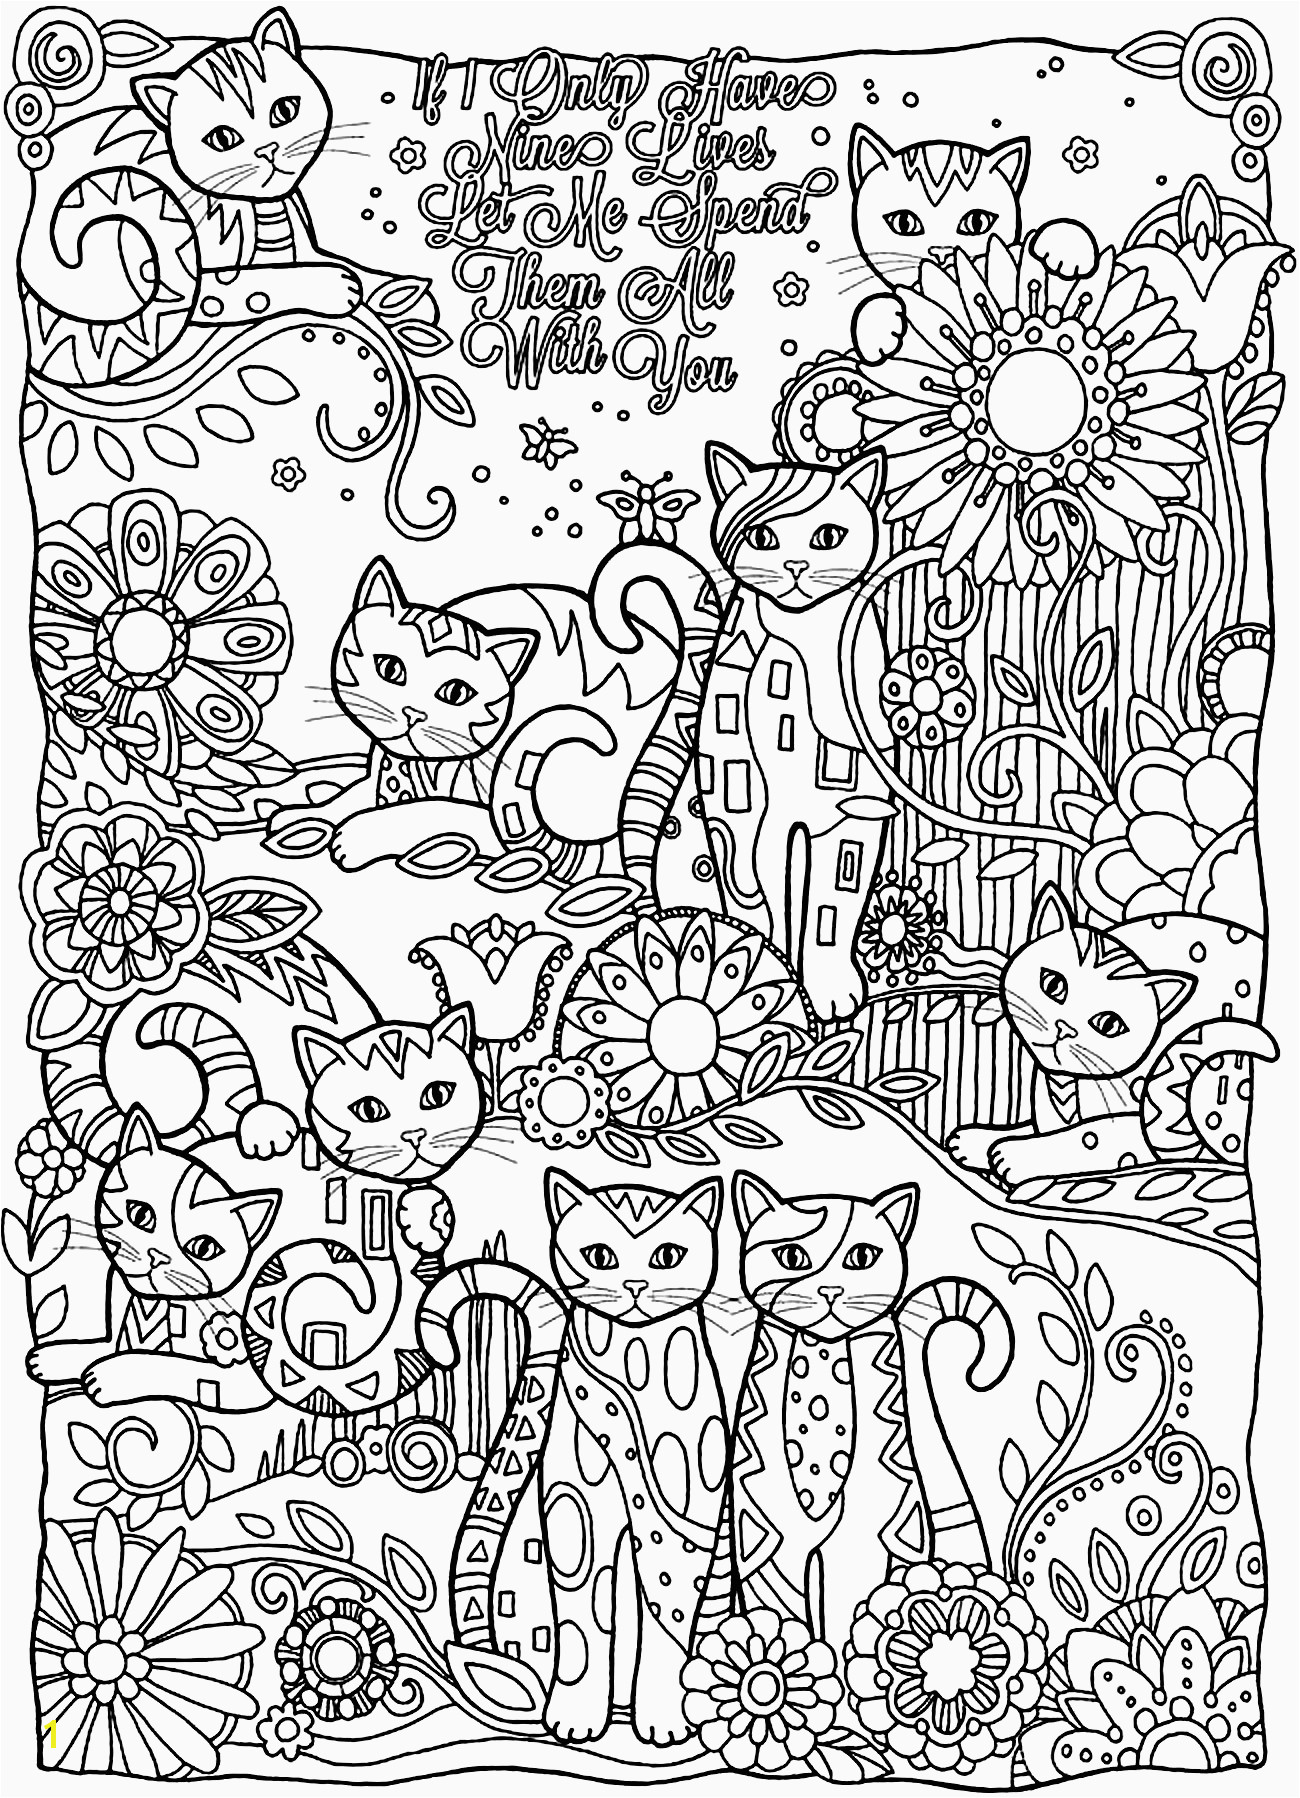 Free Printable Bible Coloring Pages New s Cute Printable Coloring Pages New Printable Od Dog Coloring